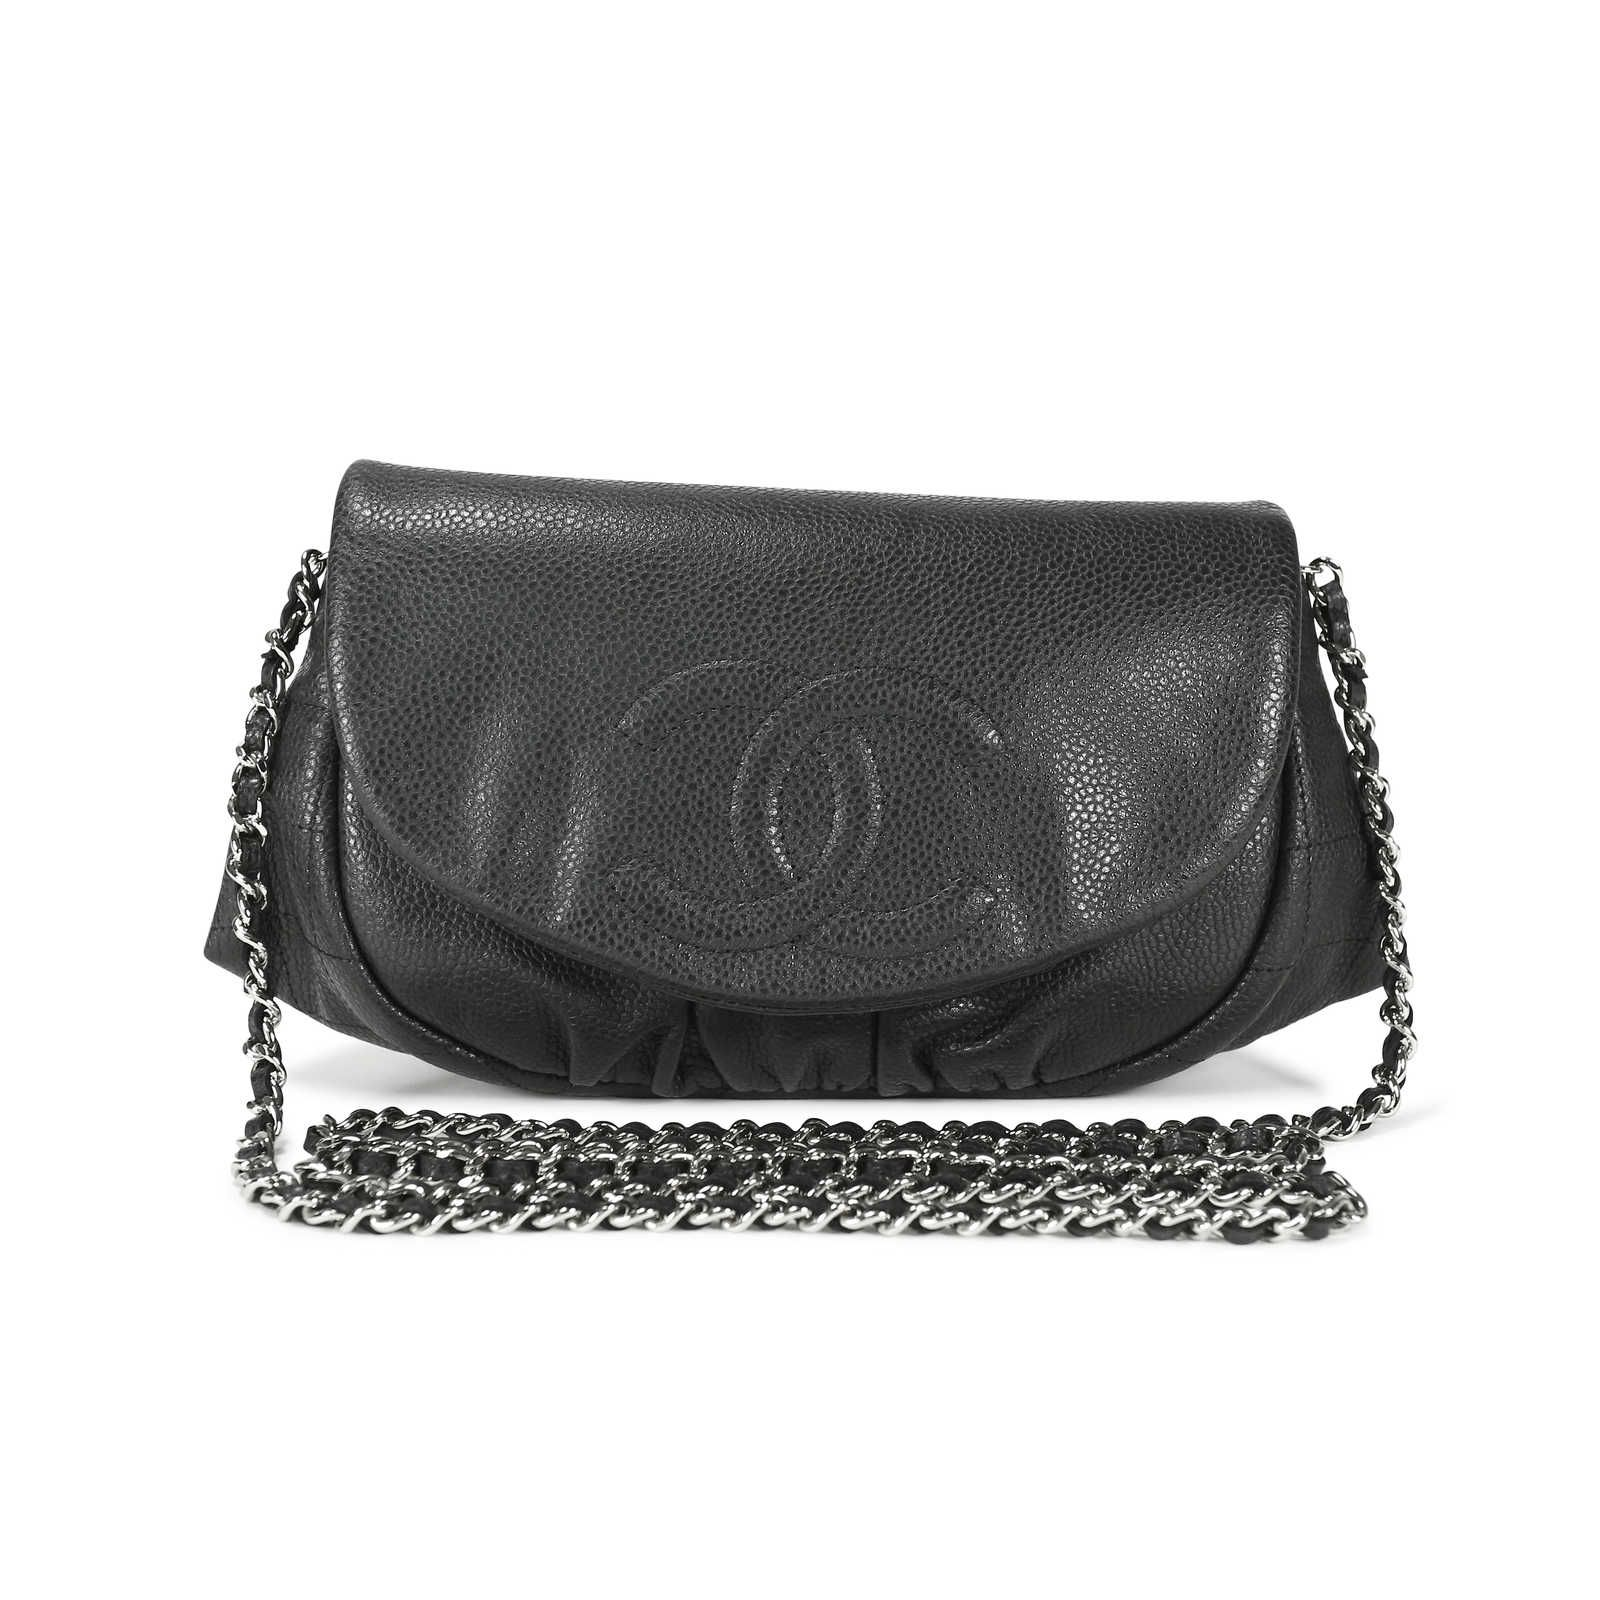 2967ca4ab7a4 Chanel Half Moon Wallet on Chain bag crafted in a black caviar leather.  Designed with a half moon ruched shape which allows it to be roomier than  most of ...